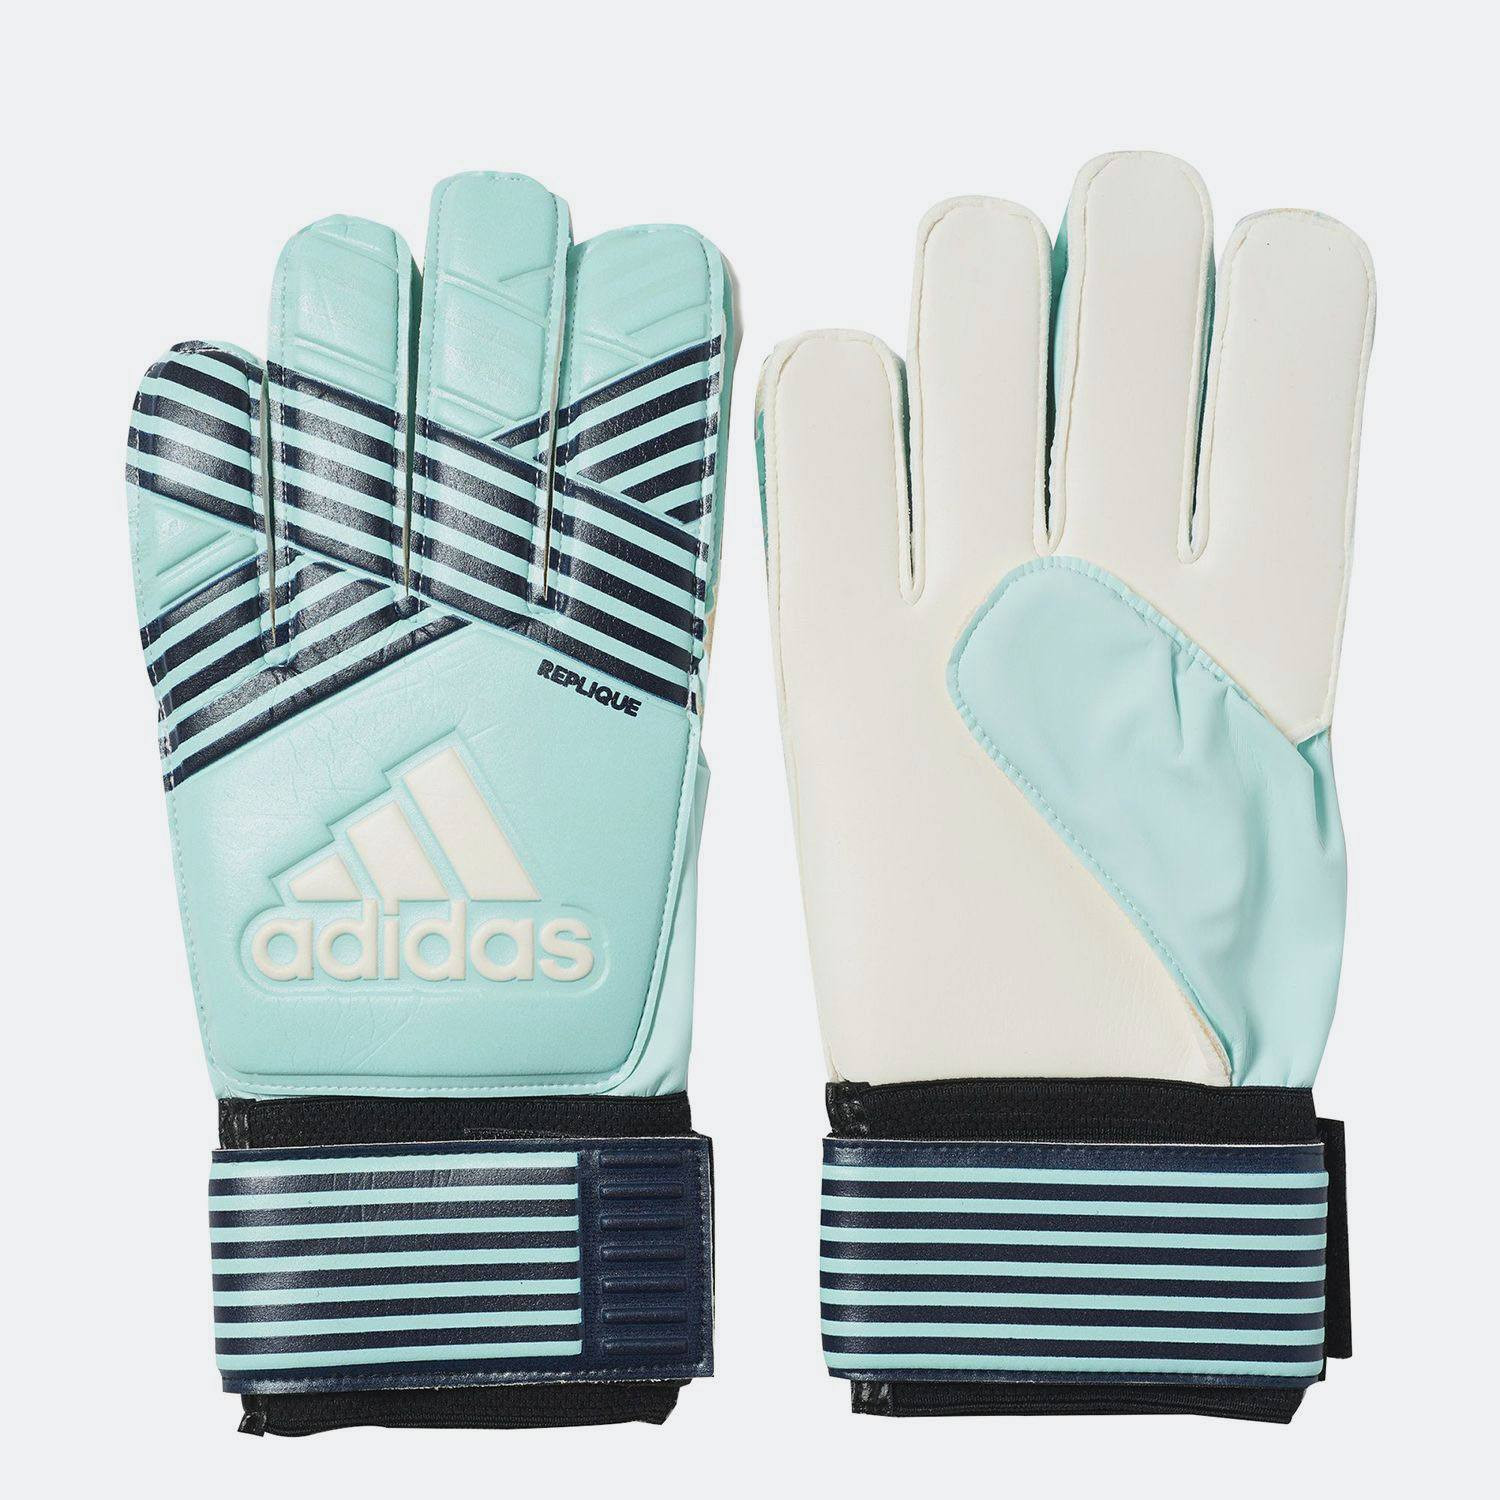 adidas Performance Ace Replique Gloves (3043600114_28198)